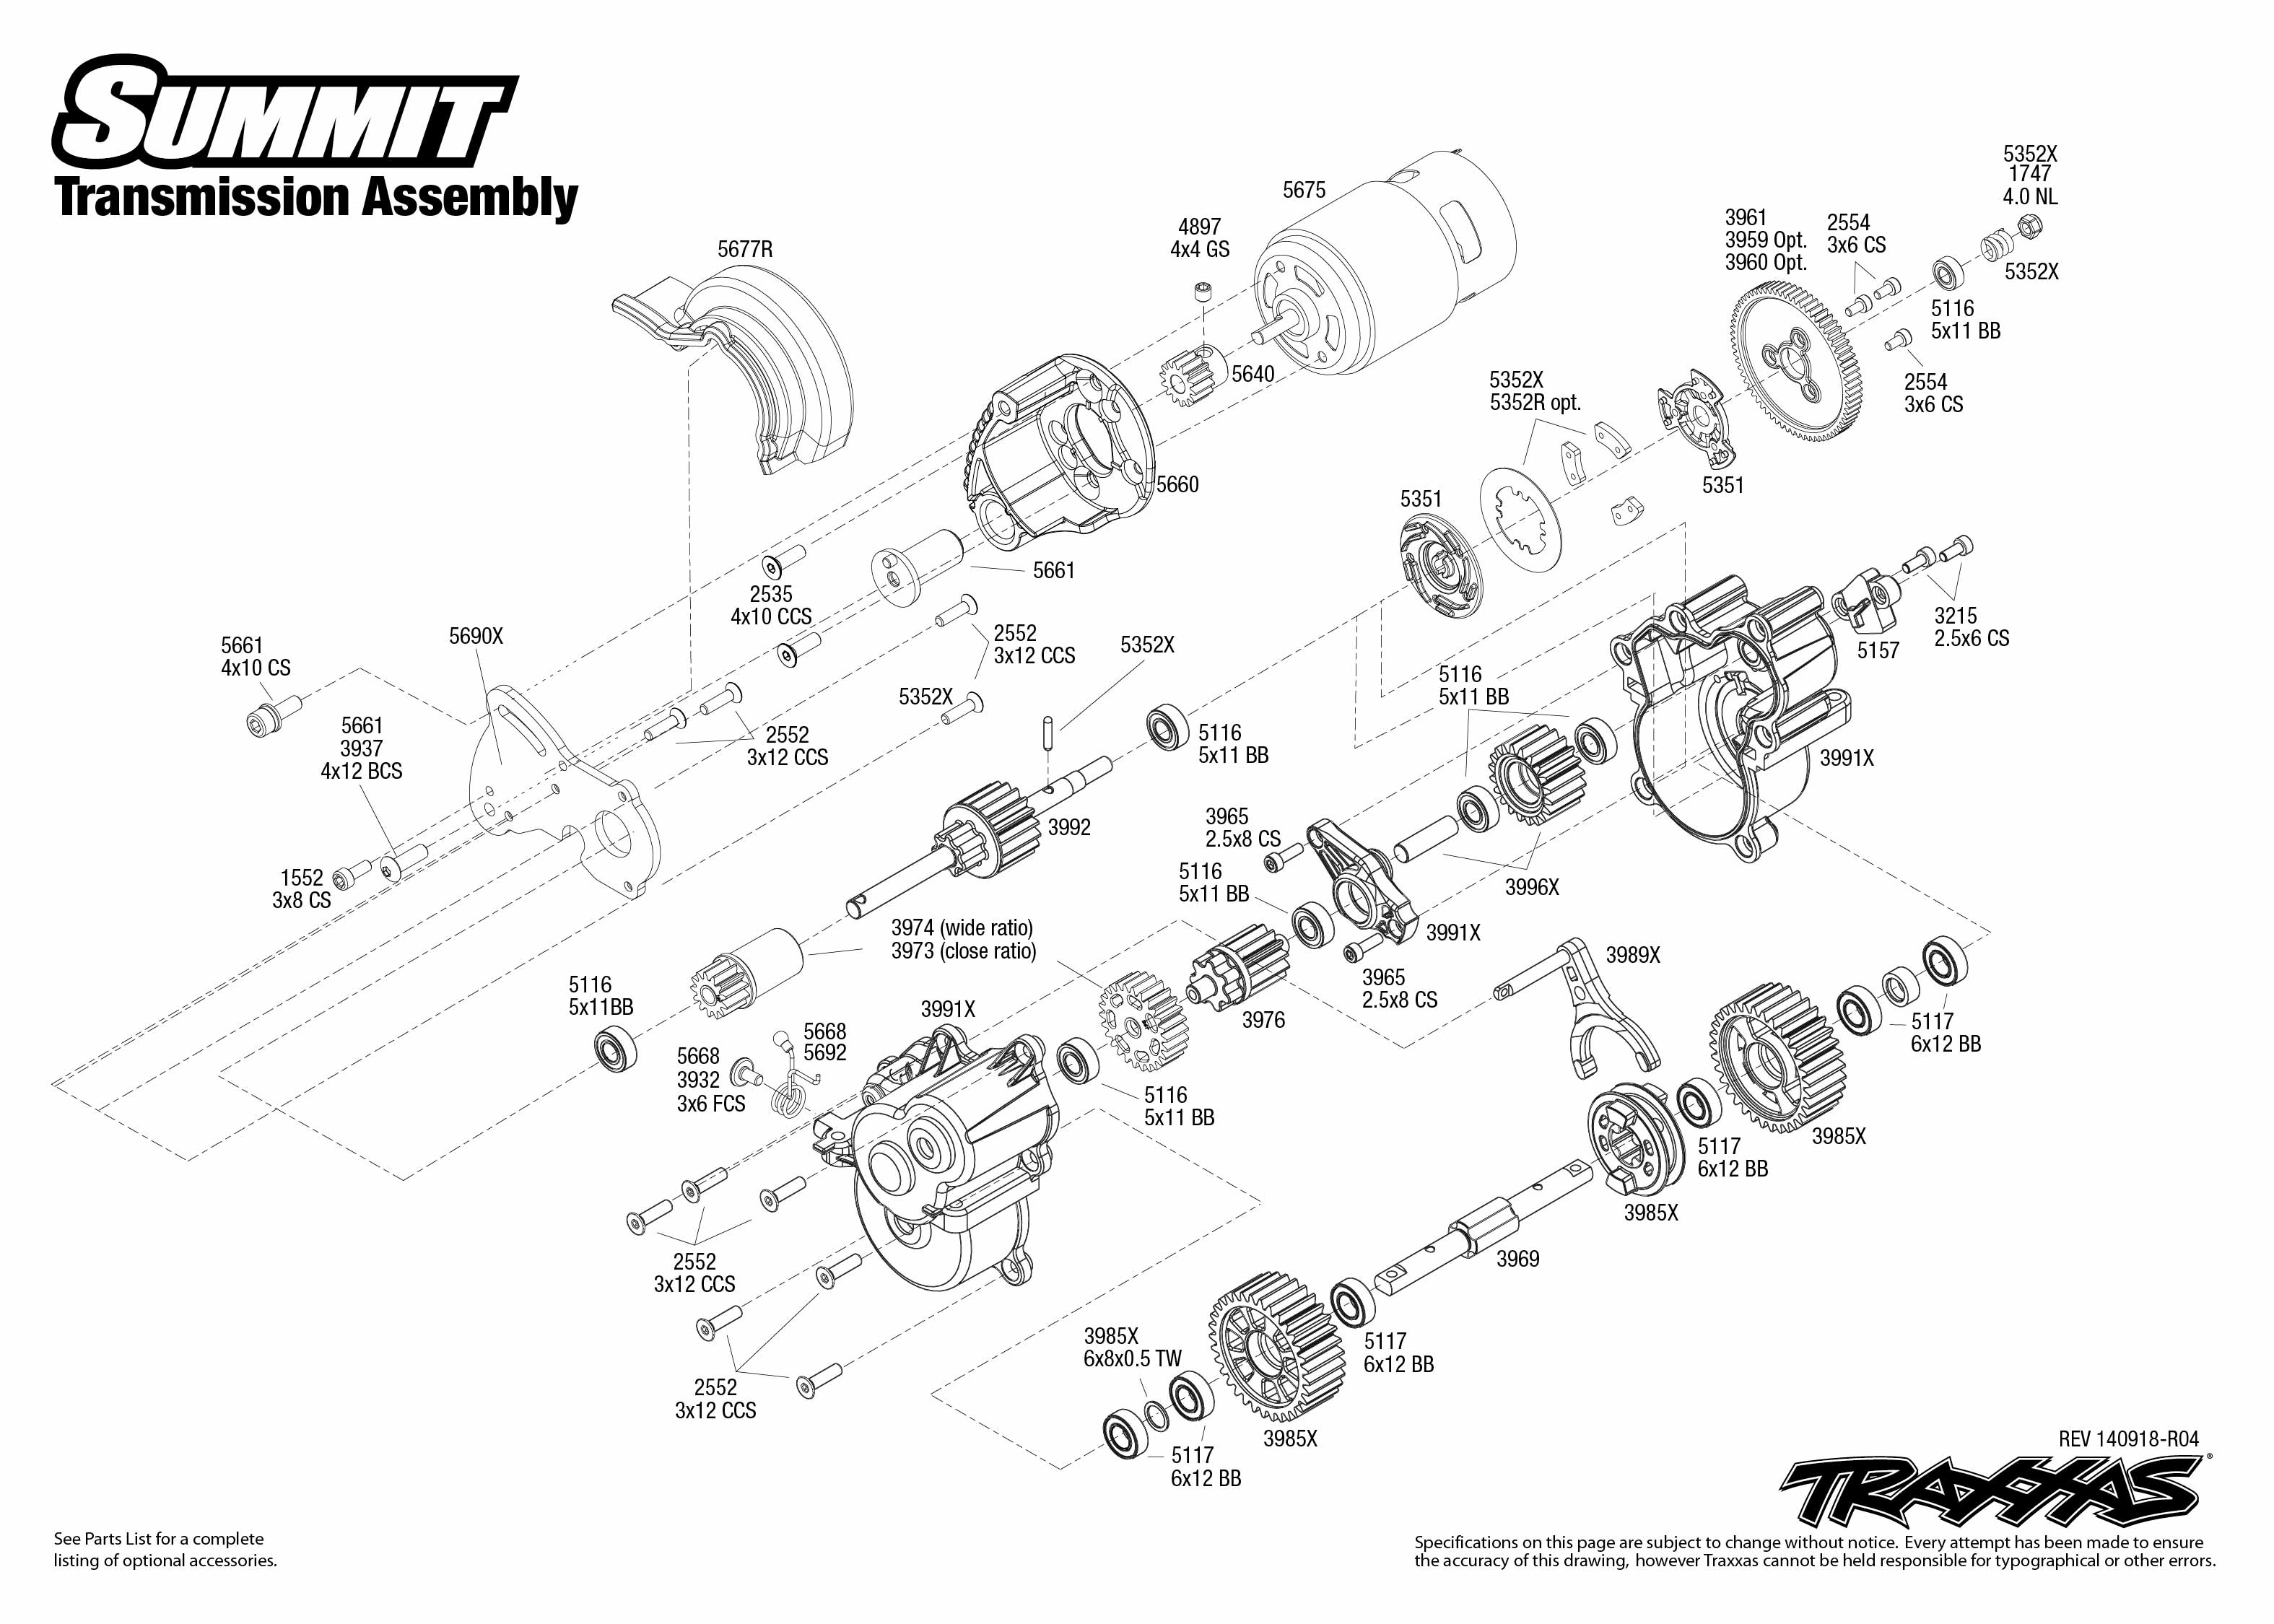 5607 Transmission Exploded View (Summit, with TQi 2.4GHz